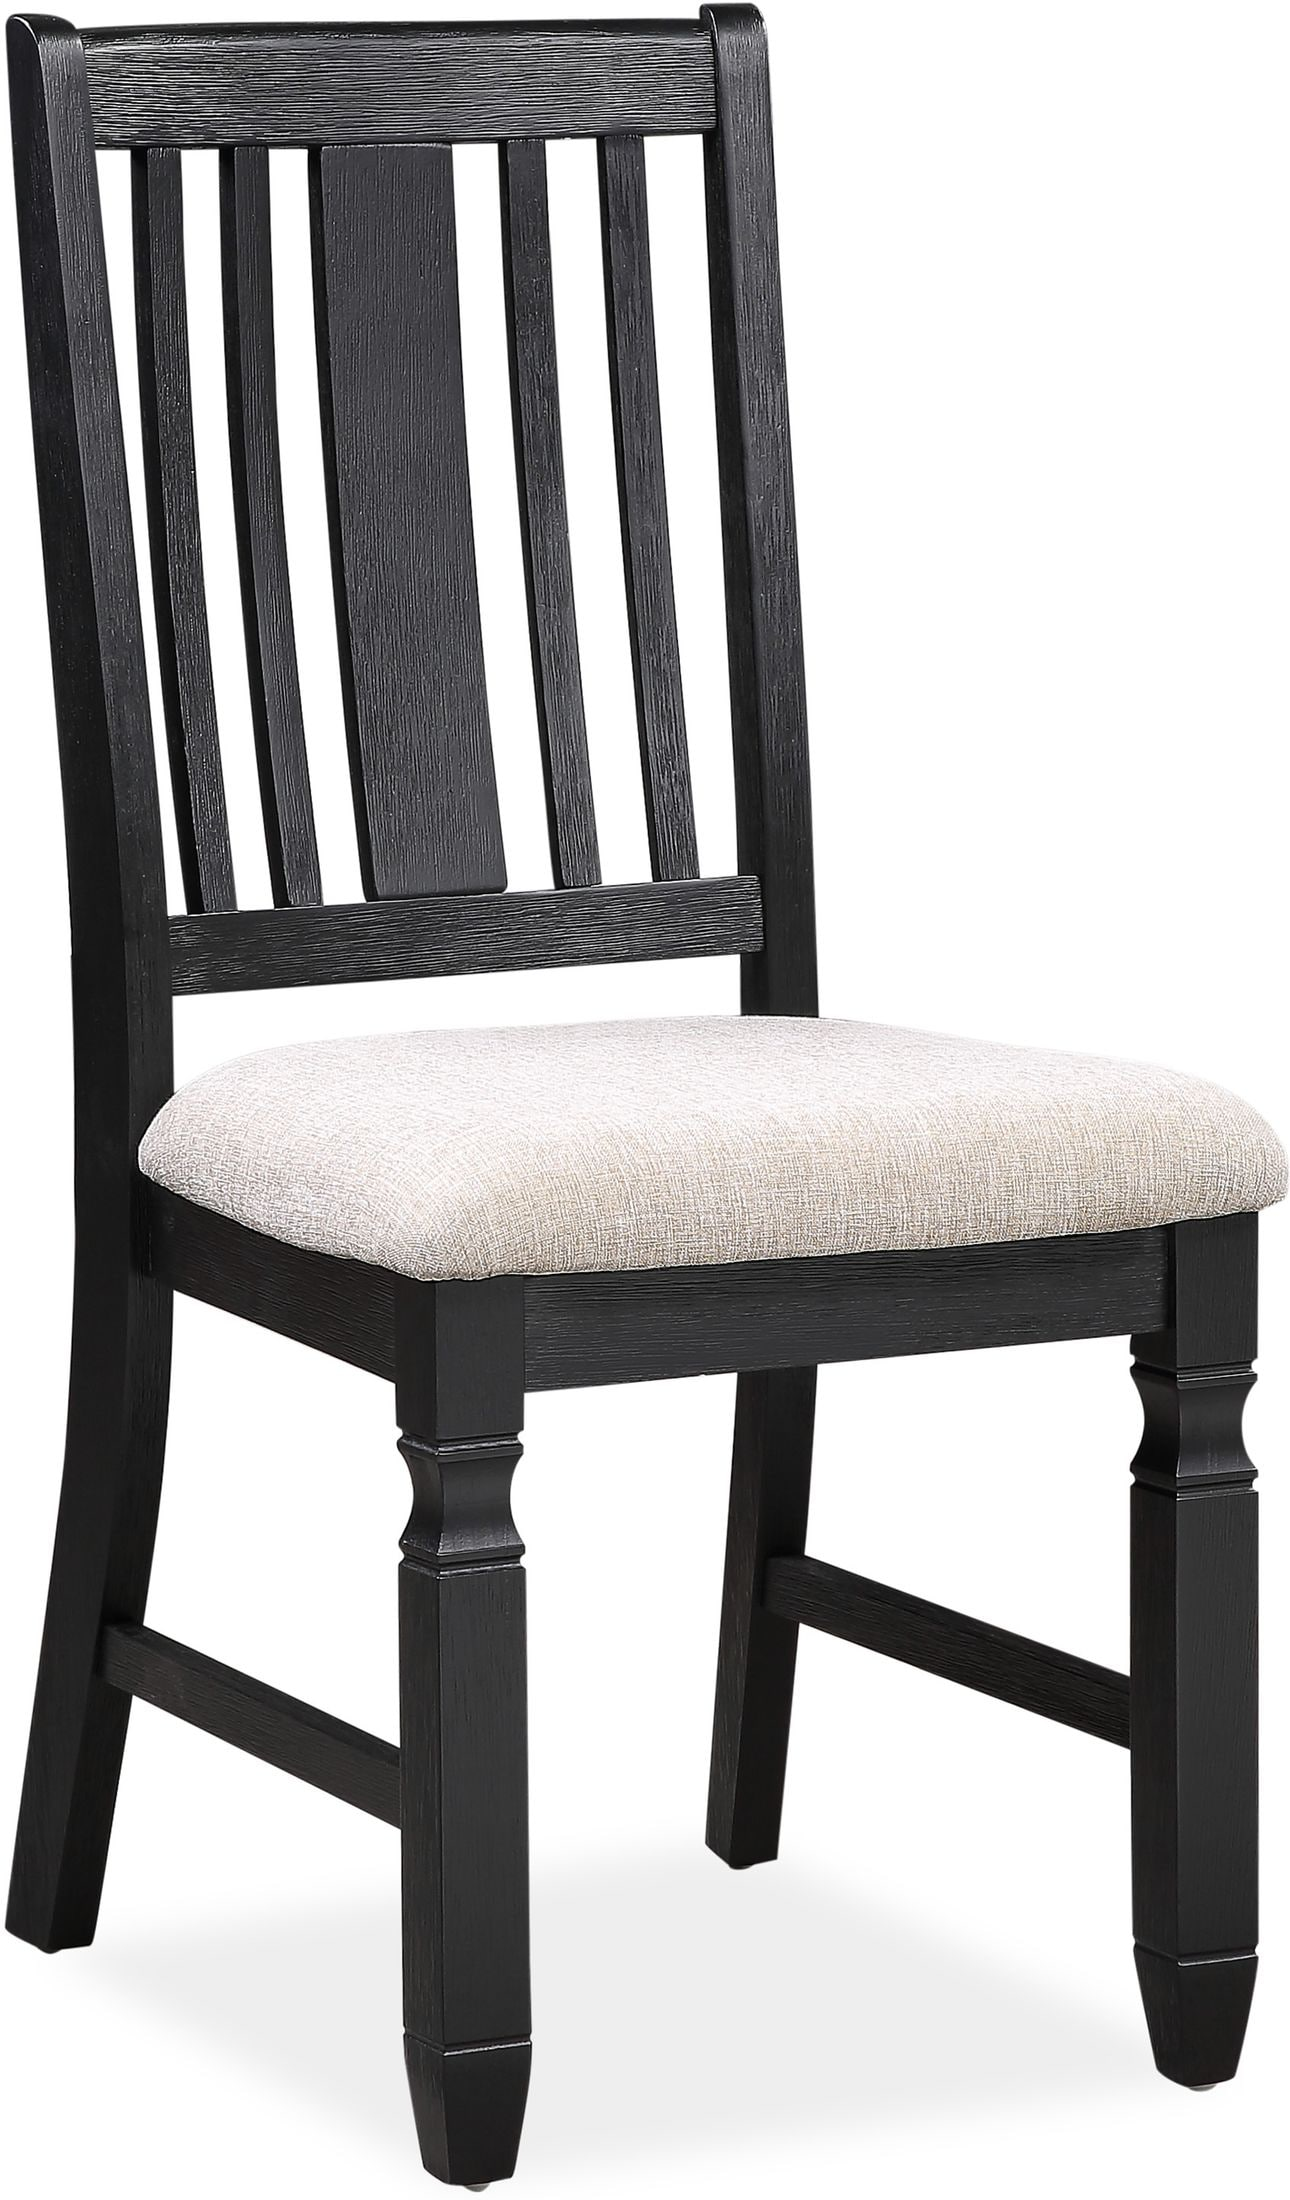 Dining Room Furniture - Glendale Dining Chair - Black